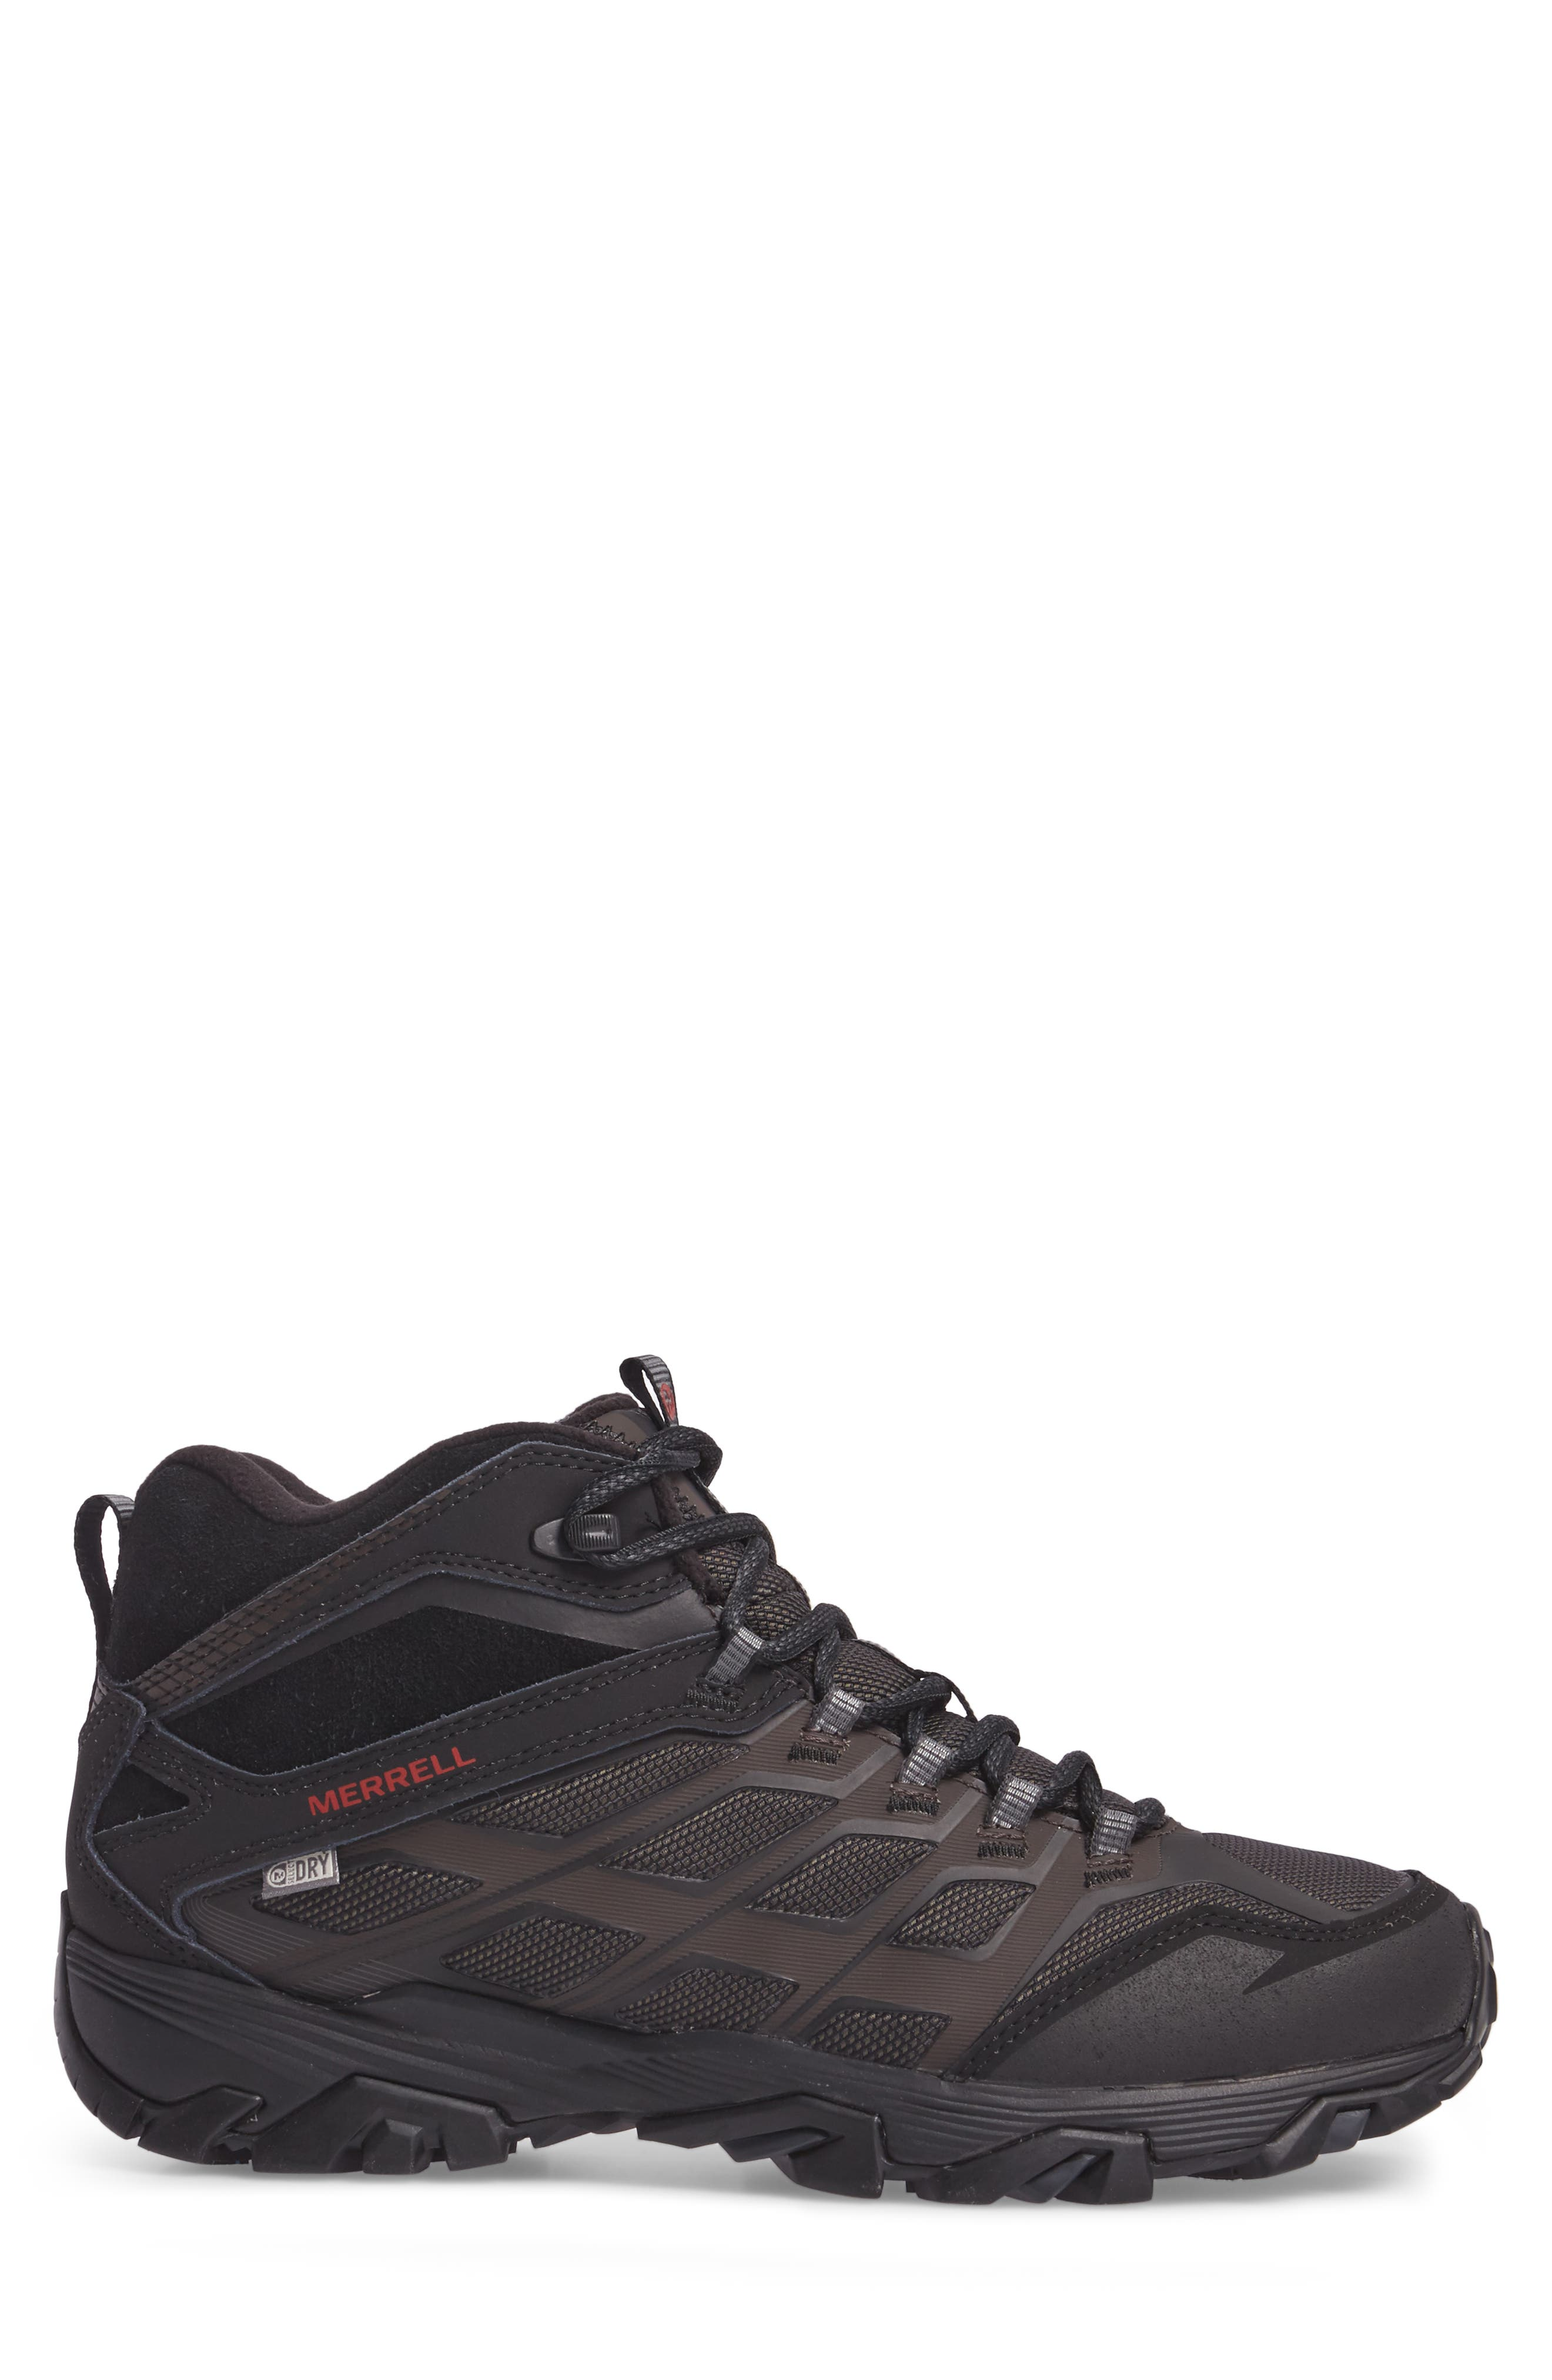 Moab FST Ice Thermo Waterproof Hiking Shoe,                             Alternate thumbnail 3, color,                             001